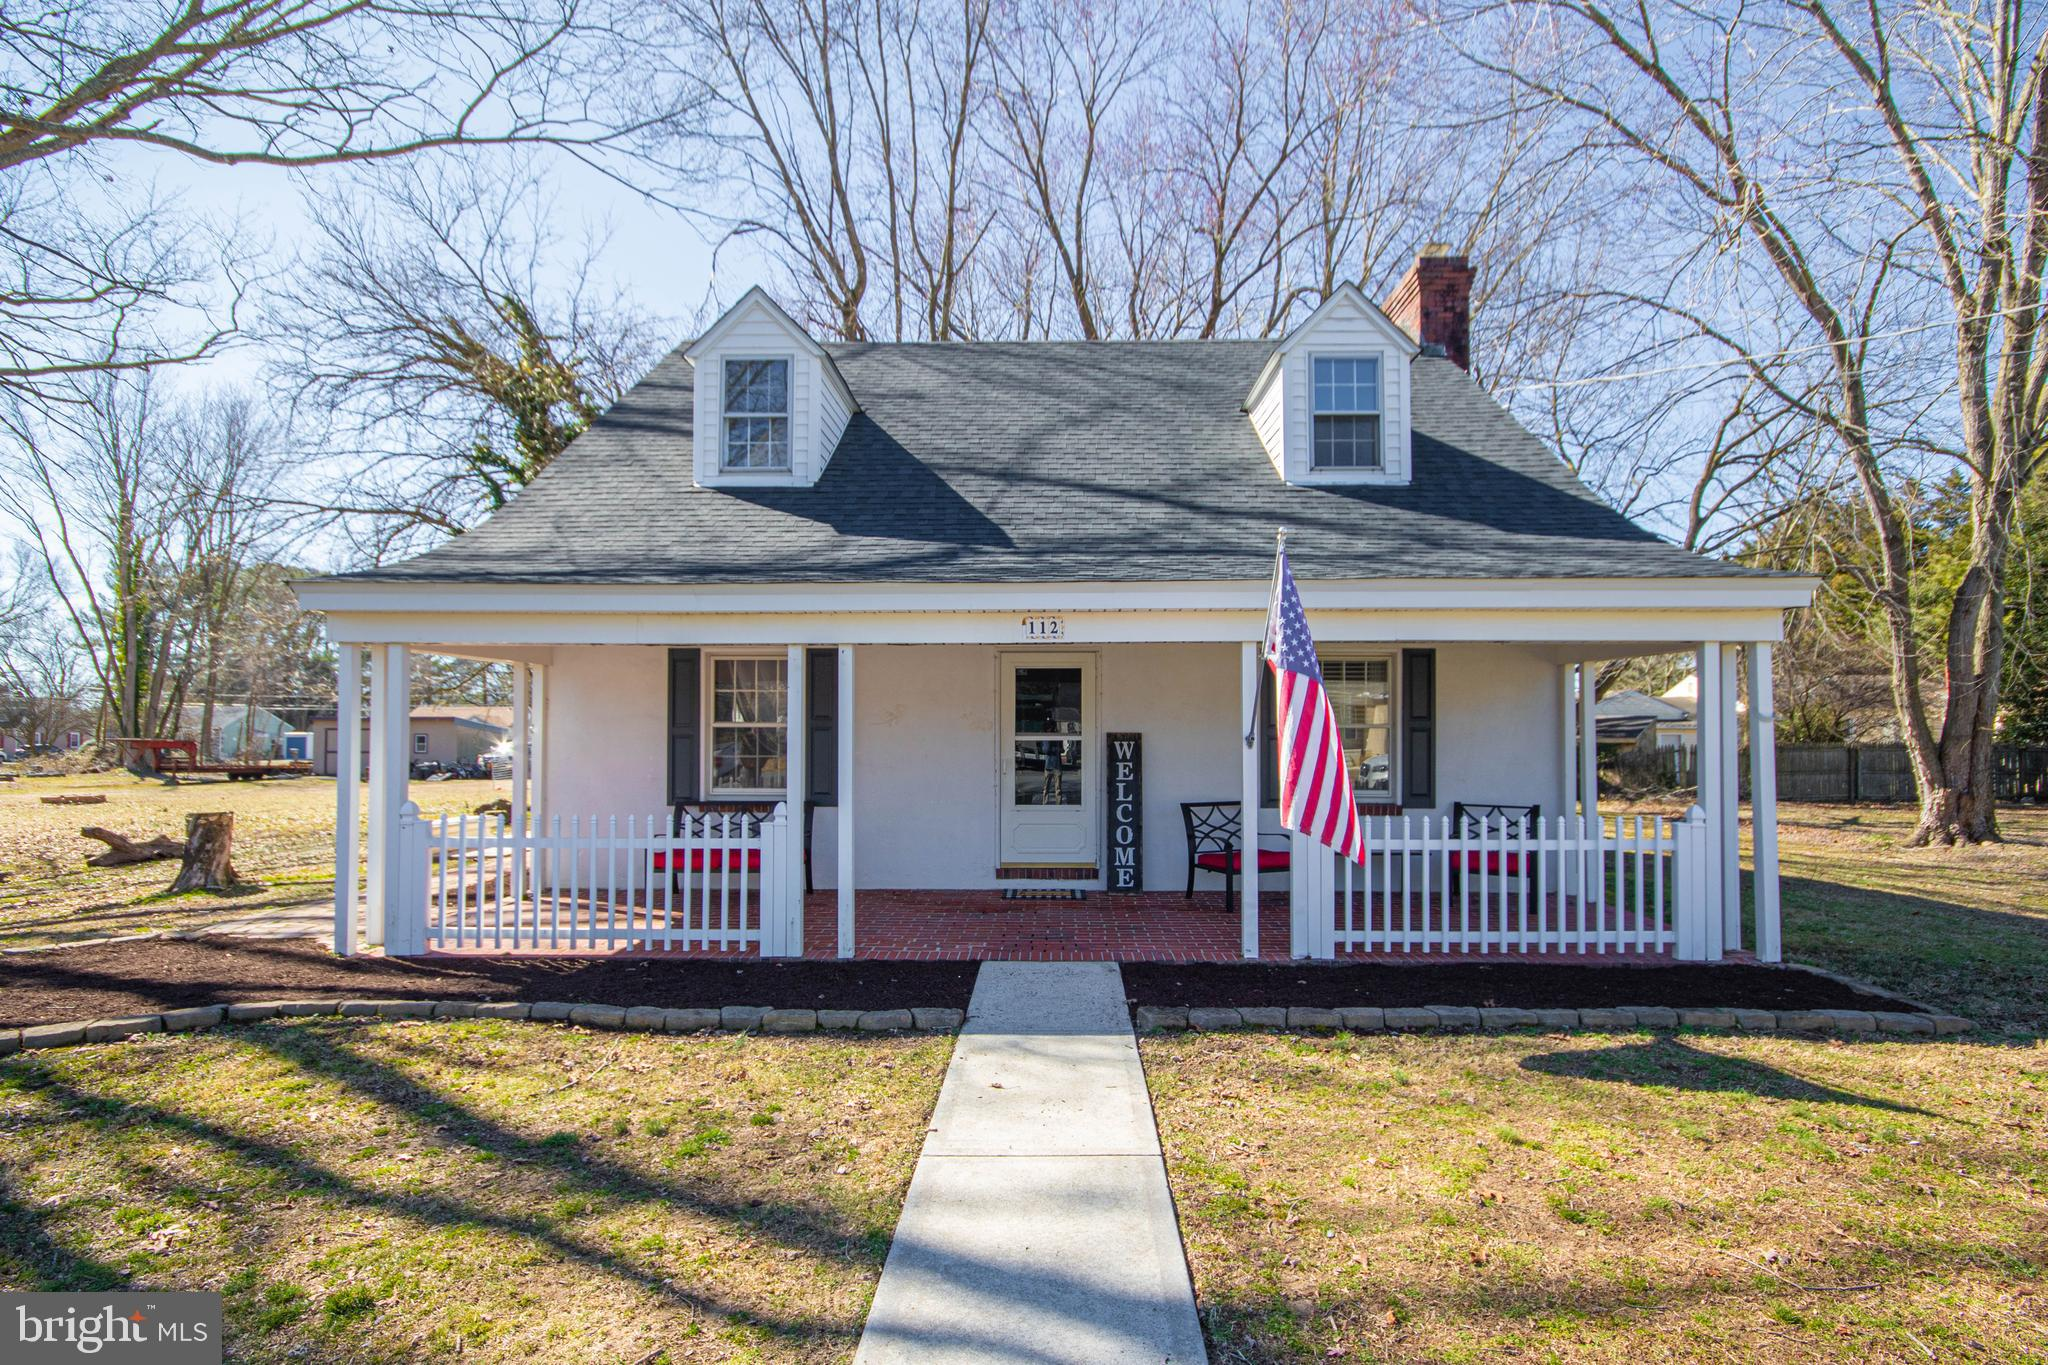 Cute and Cozy! Property boasts 4 bedrooms, 3 bathrooms, and over 1500sqft. Recent upgrades include n